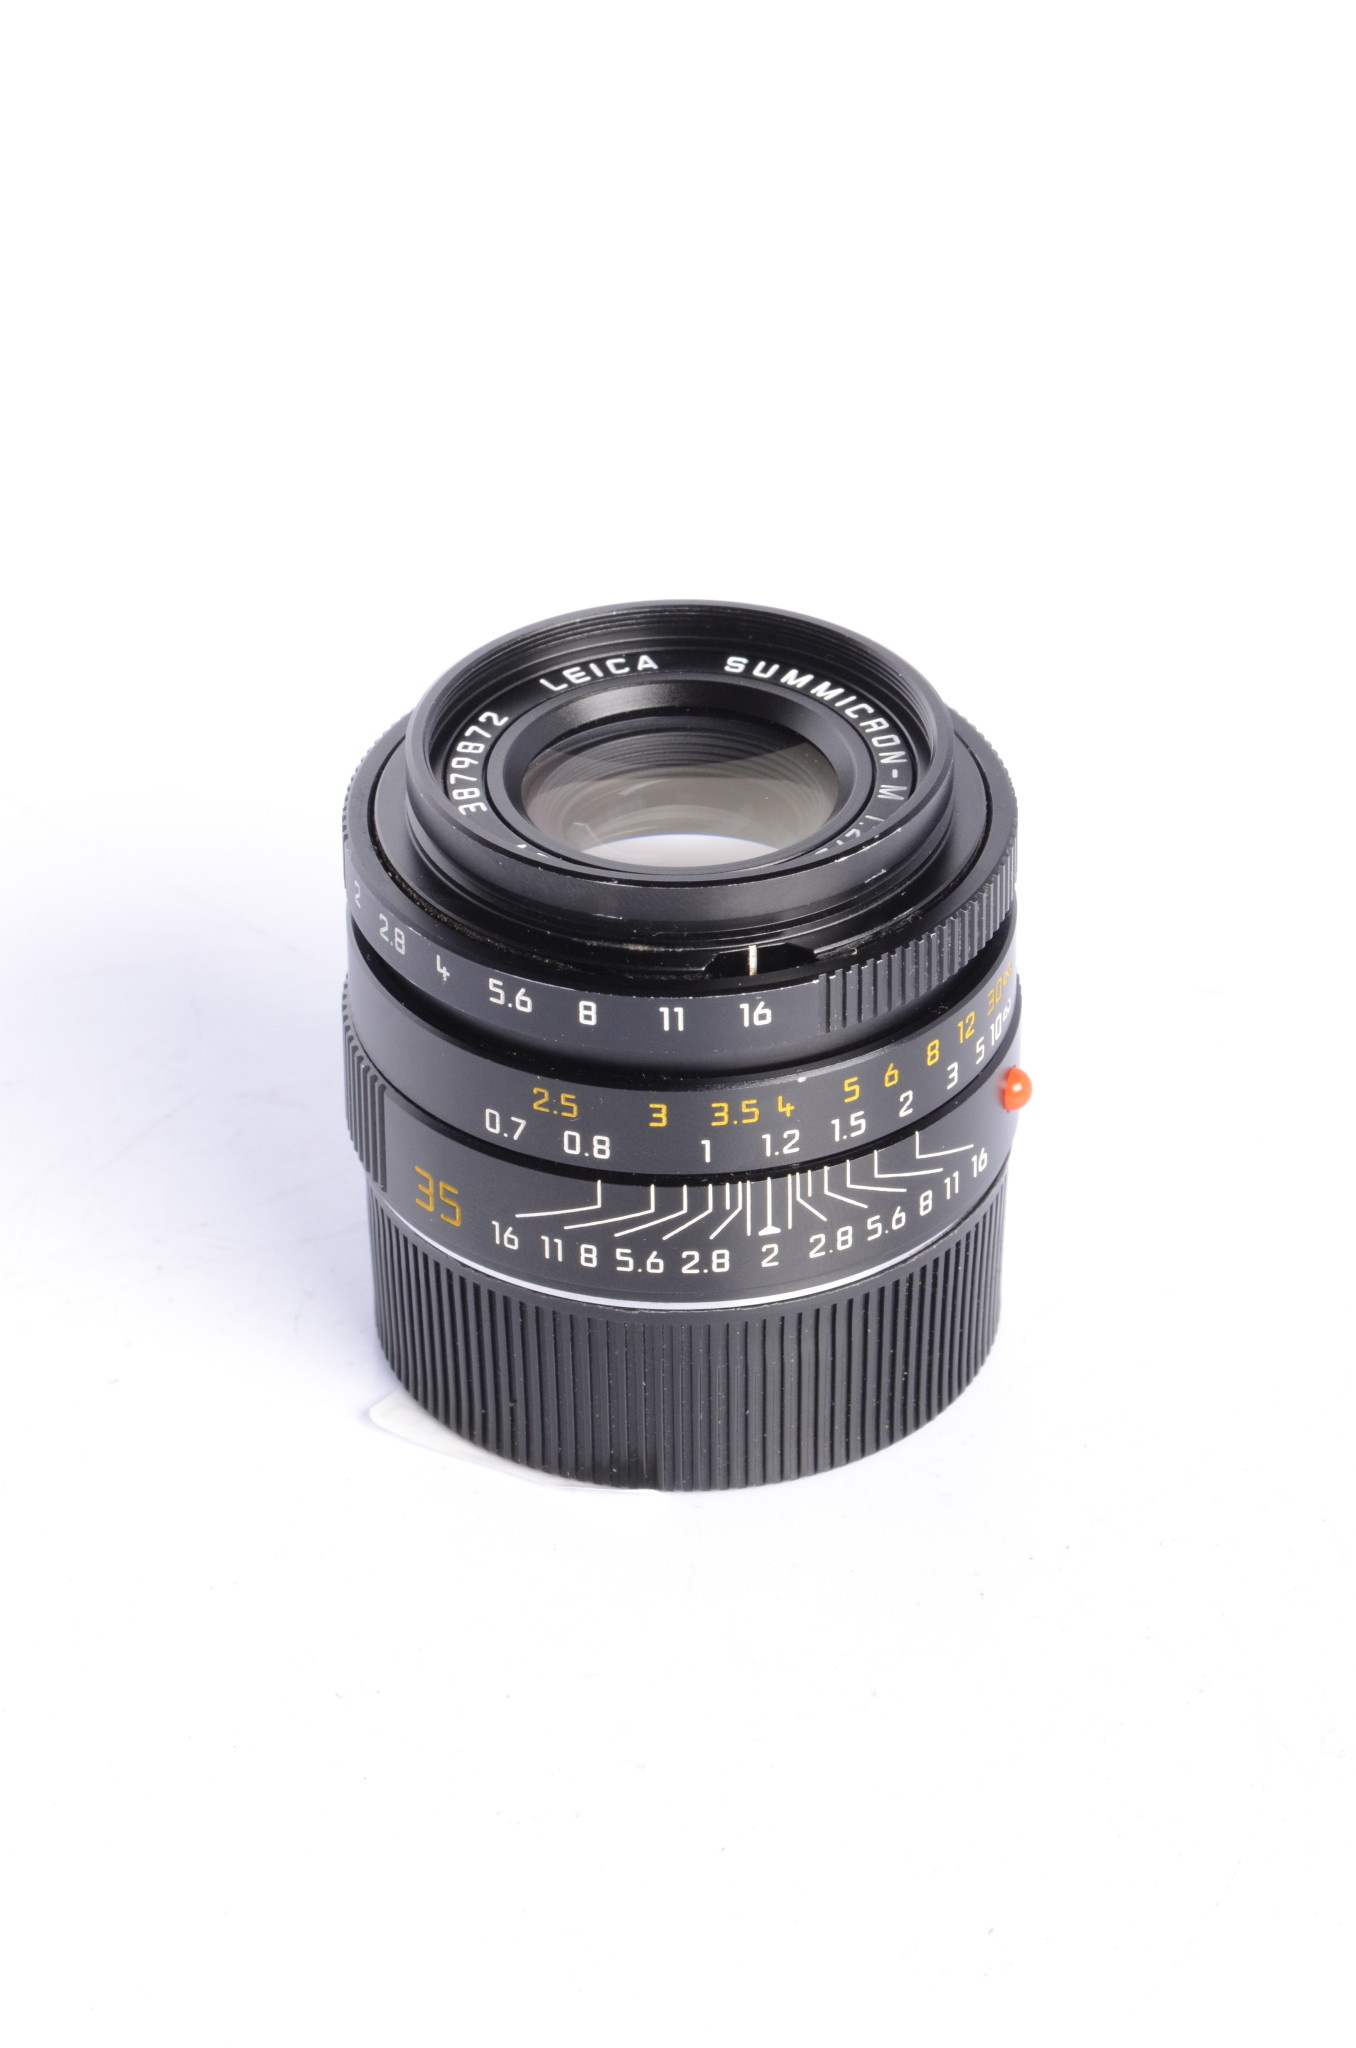 Leica Leica SUMMICRON-M 35mm f/2 Aspherical Lens - Black #11879 *